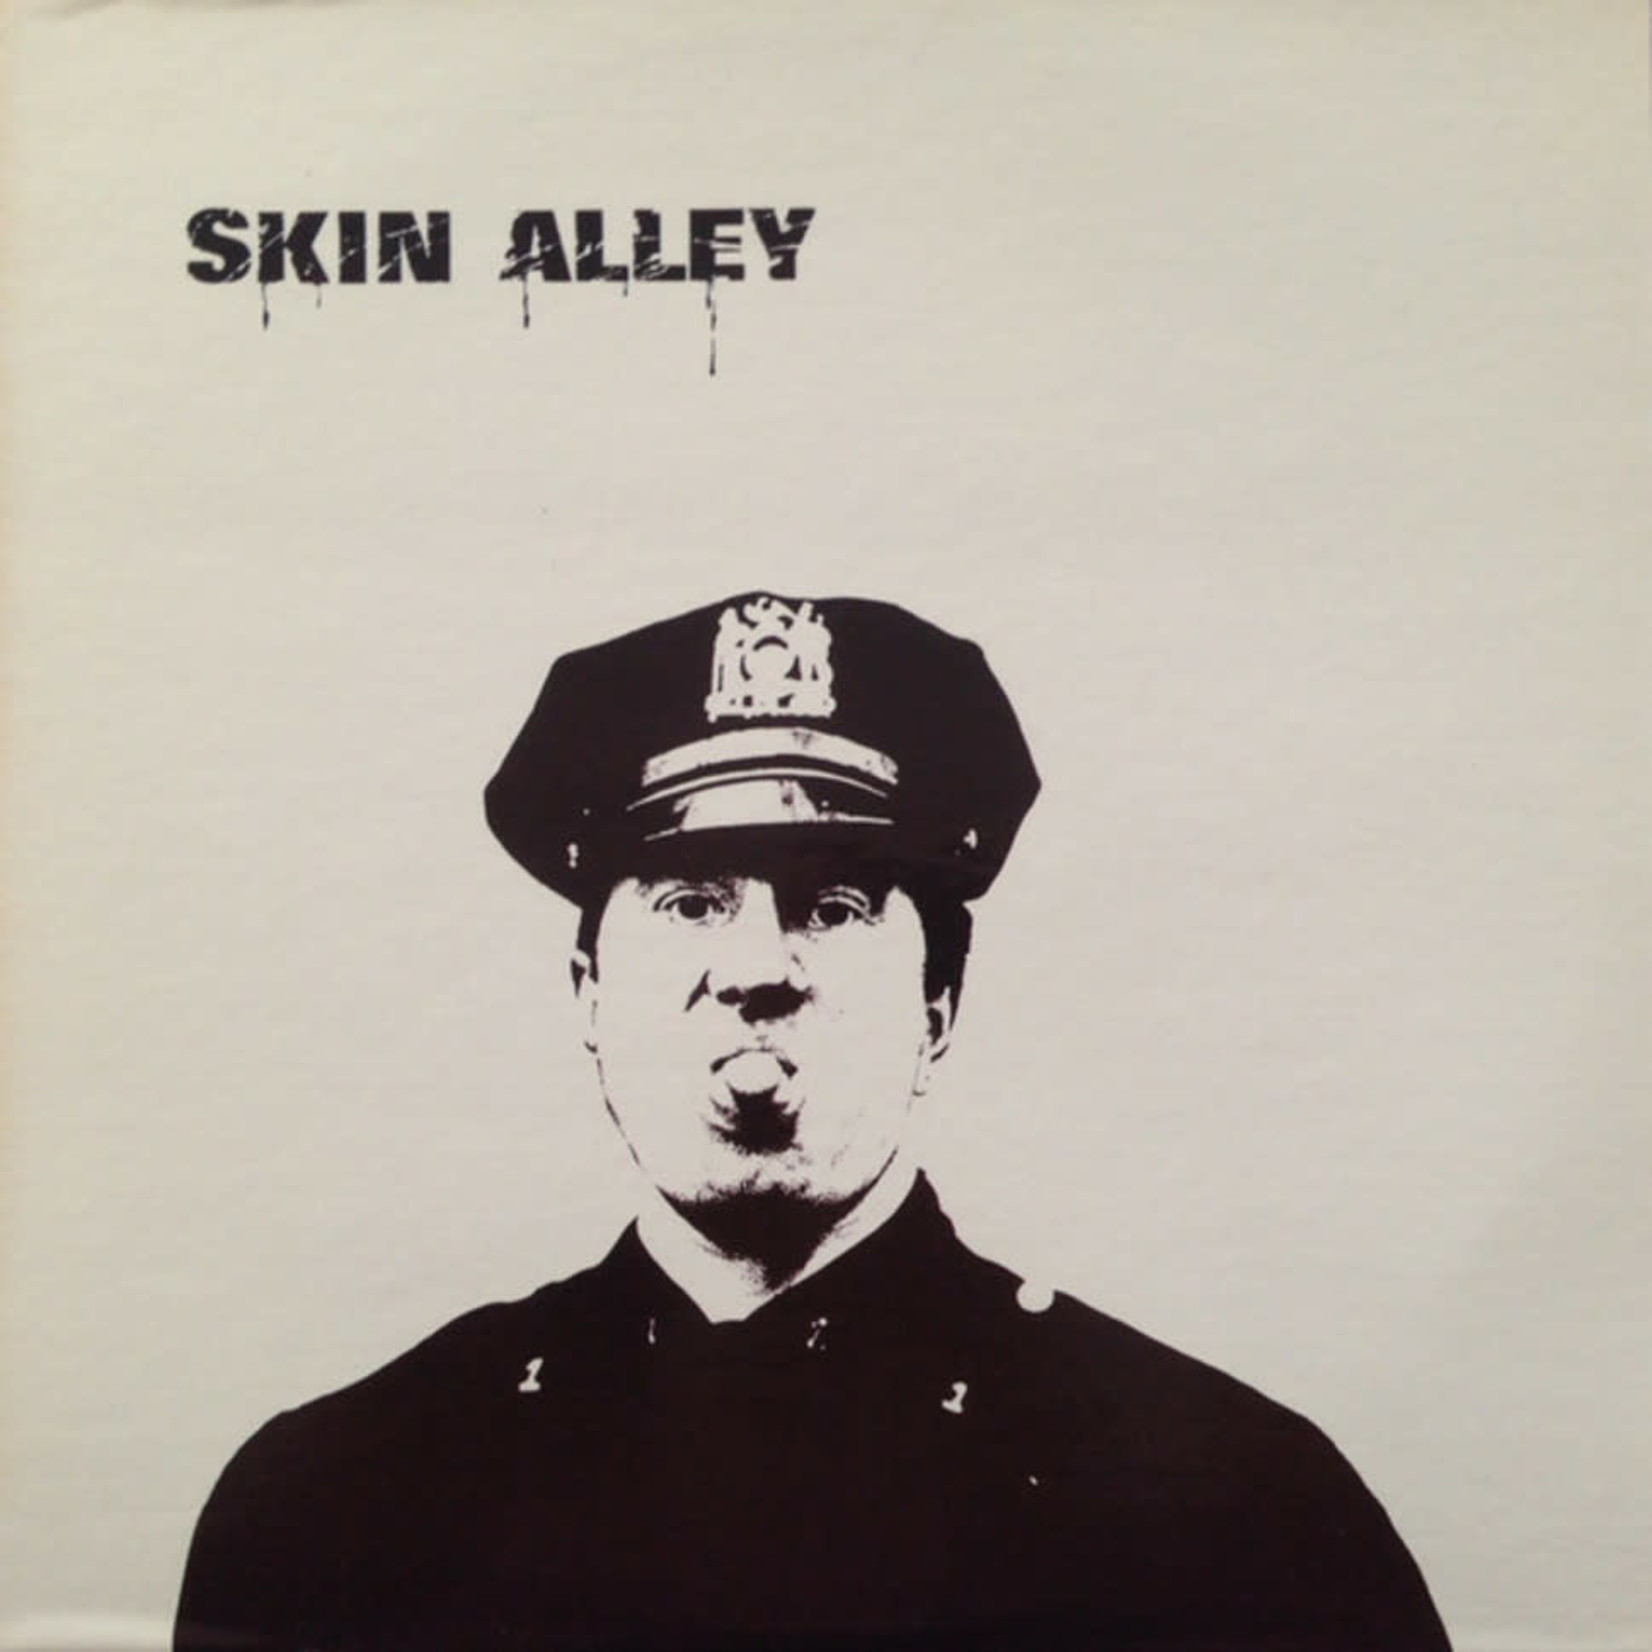 [New] Skin Alley: self-titled